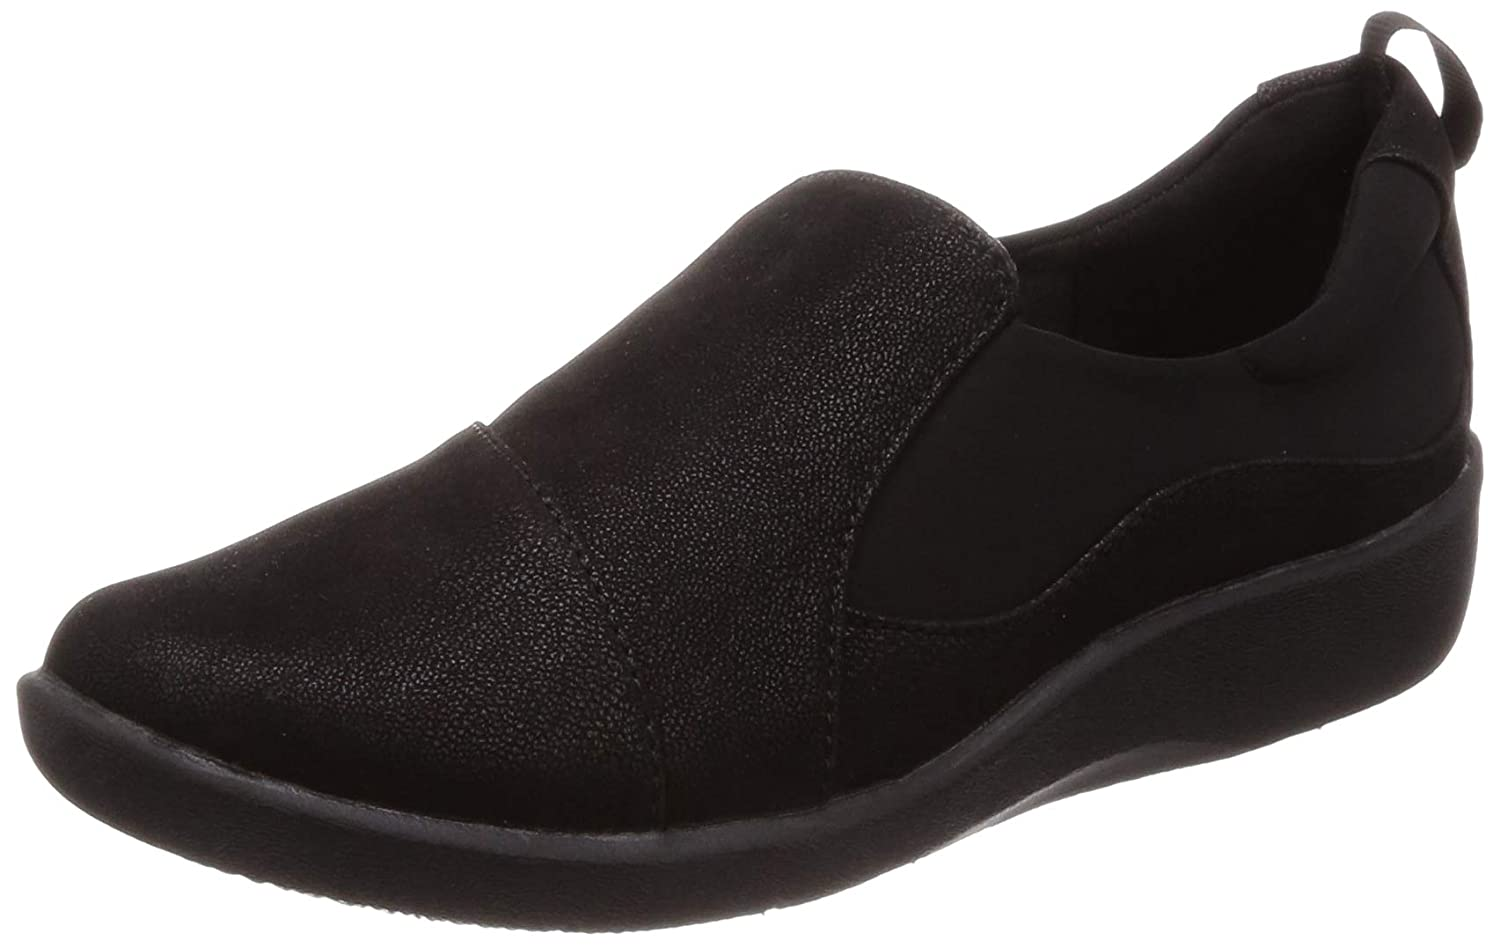 Sillian Paz - Black Clarks